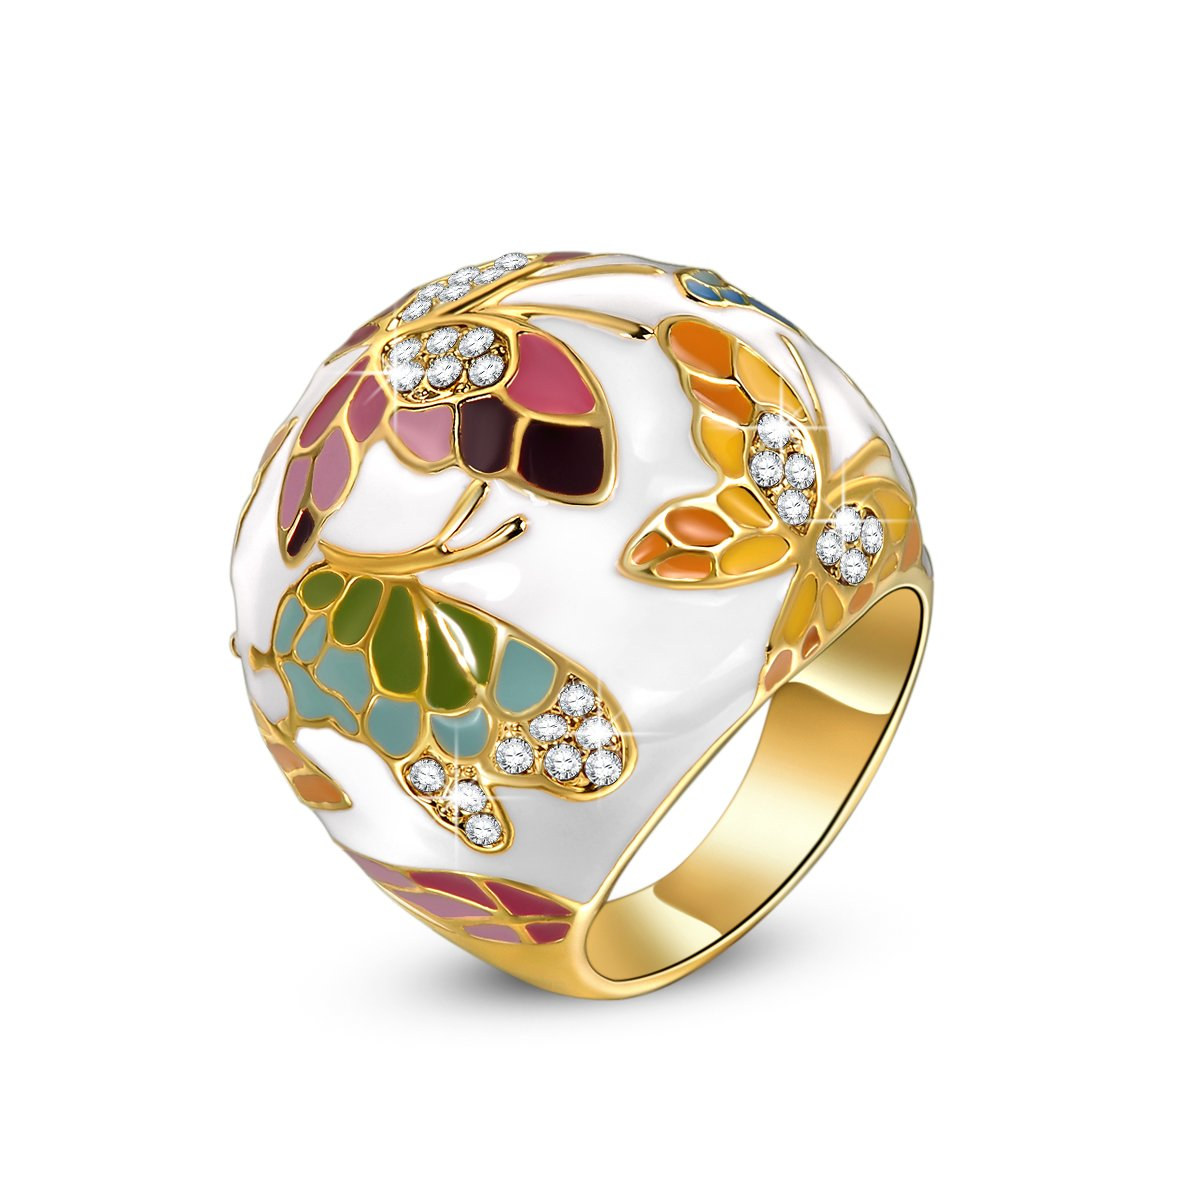 QIANSE ''Spring of Versailles Enamel Rings for Women Size 9 Gold Rings for Teen Girls Butterfly Ring Jewelry for Women Birthday Gifts for Mom Present for Mother Daughter in Law